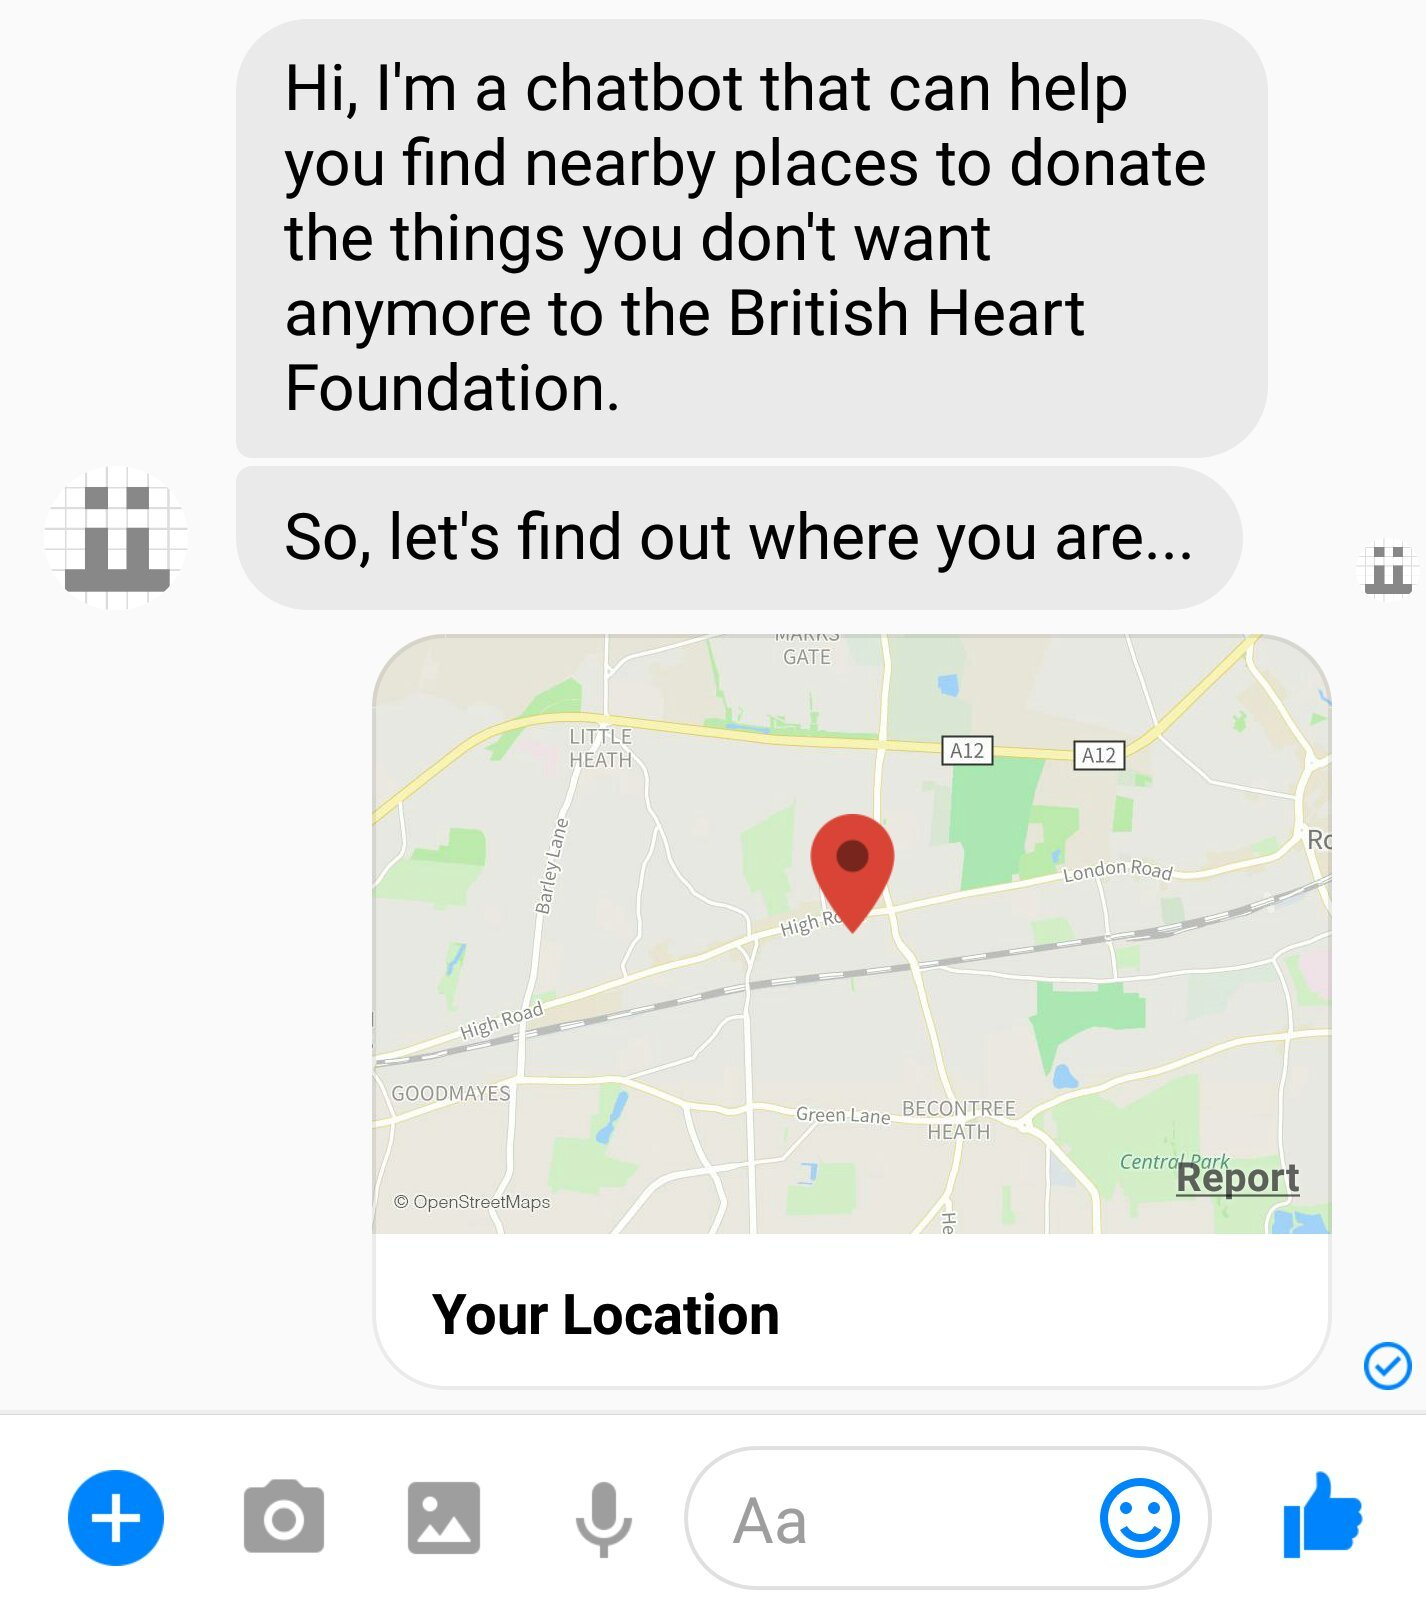 Chatbot location